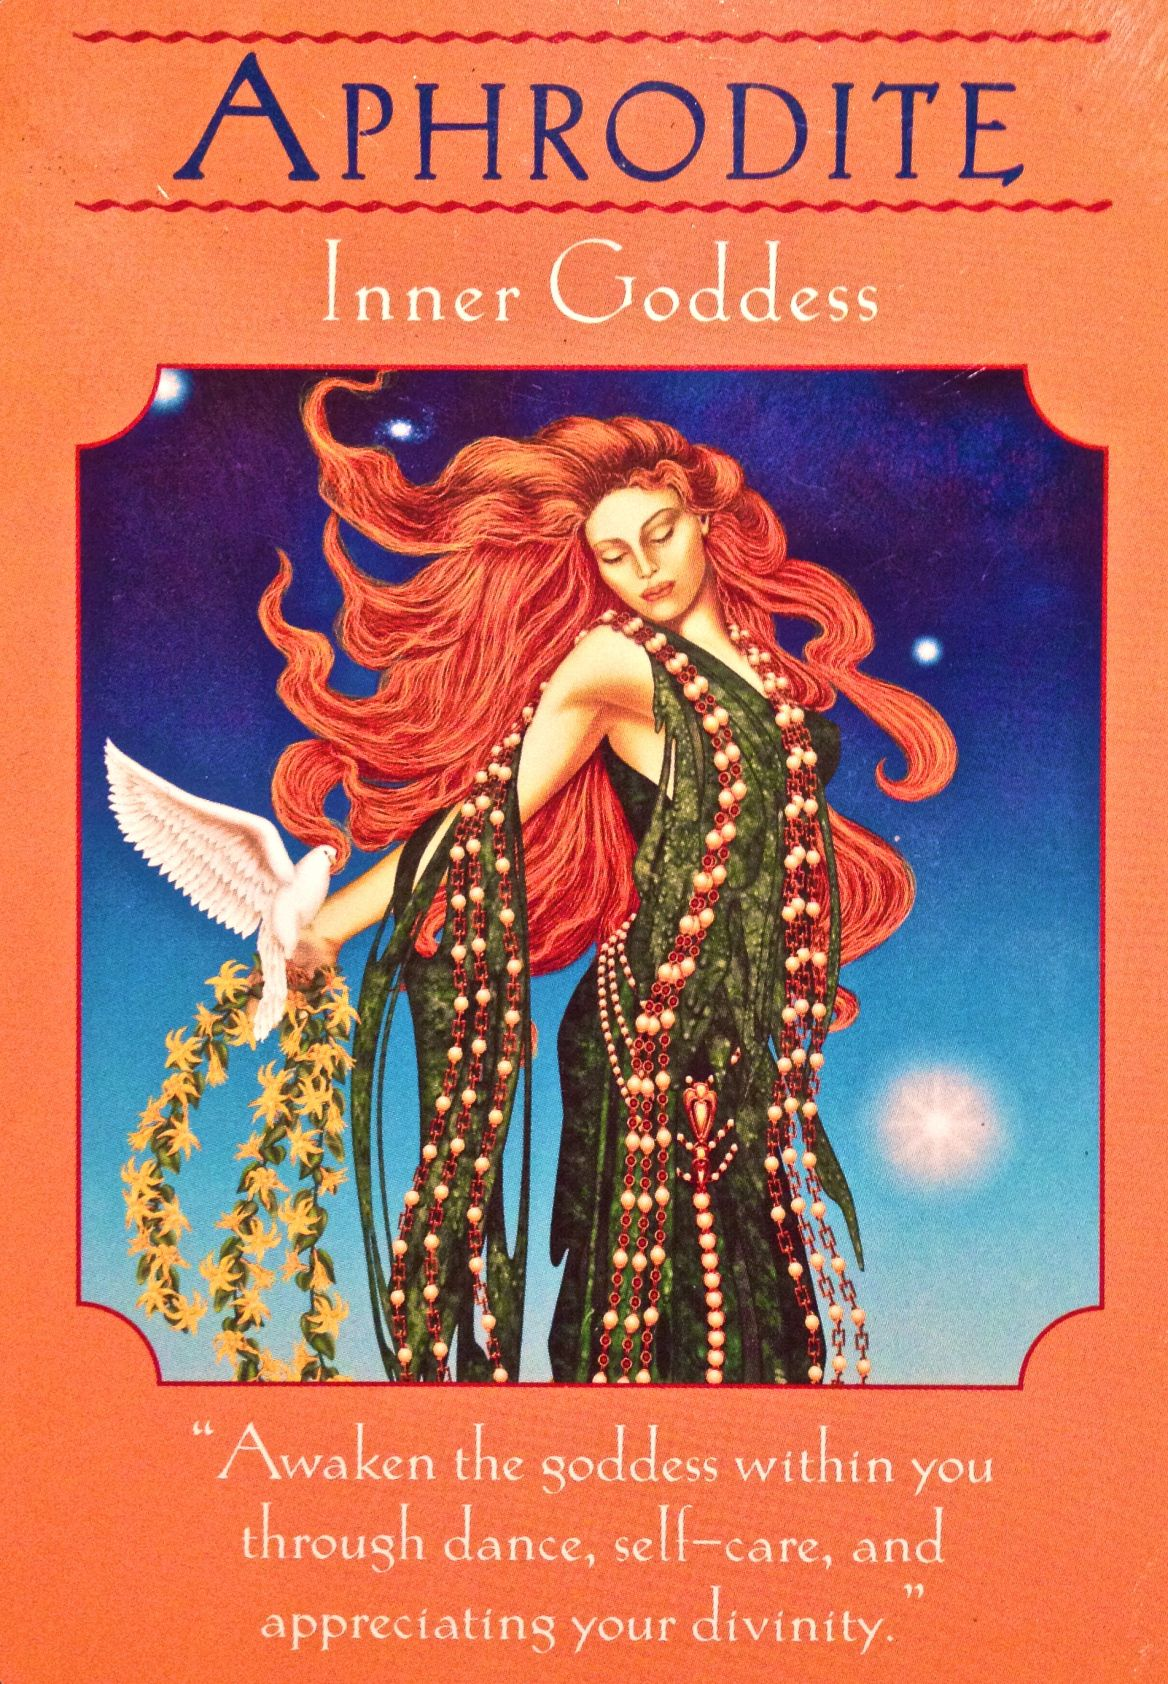 Aphrodite Inner Goddess From The Goddess Guidance Oracle Cards